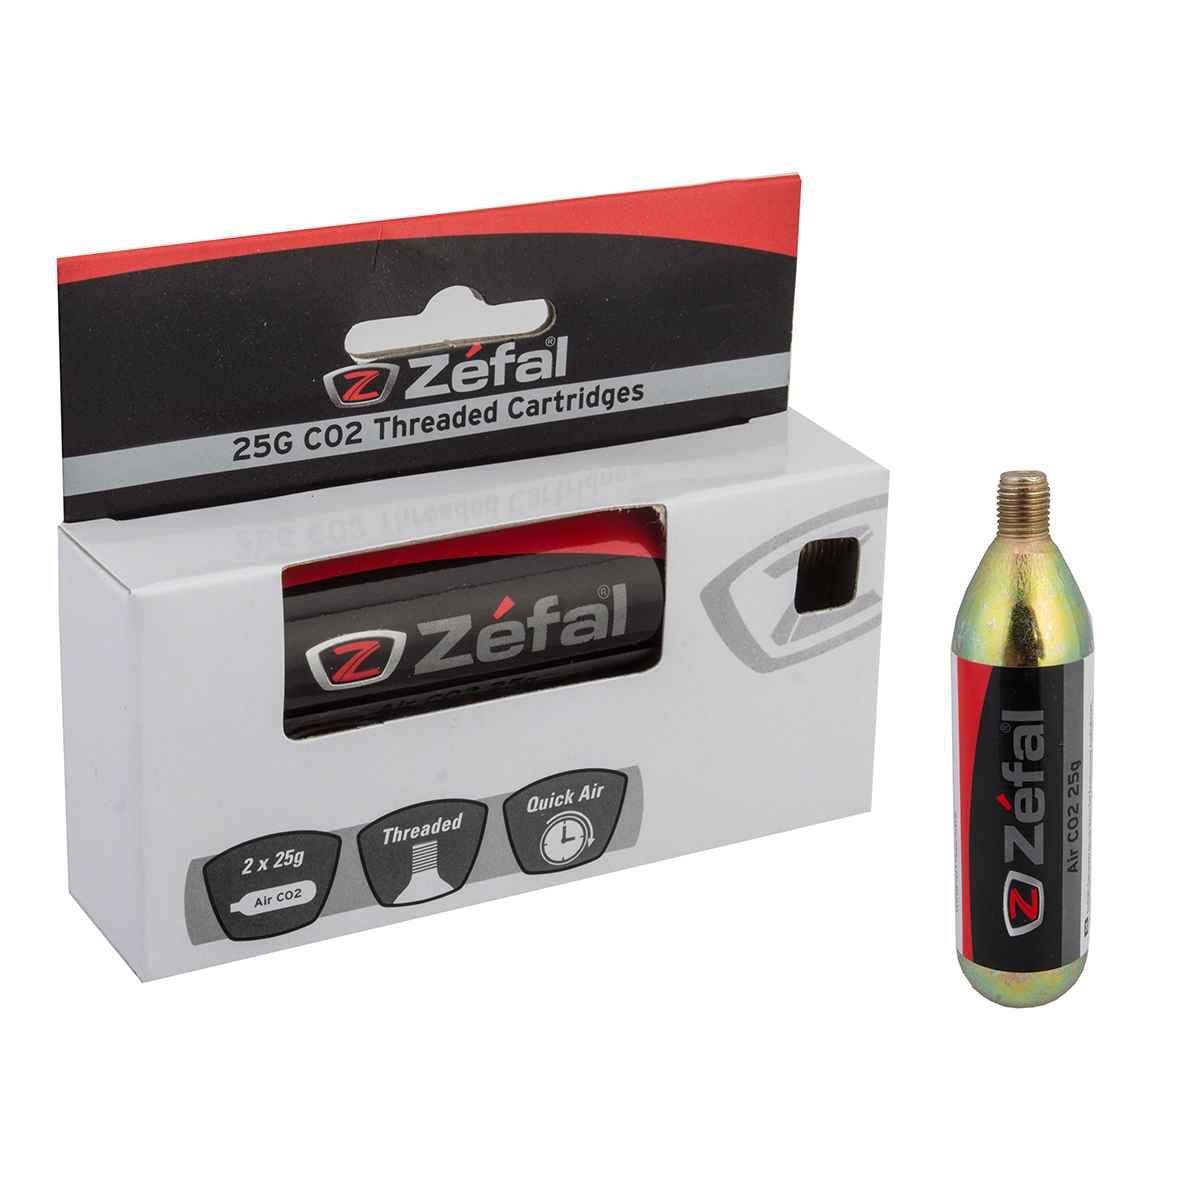 Zefal Threaded CO2 Cartridges - 4250D